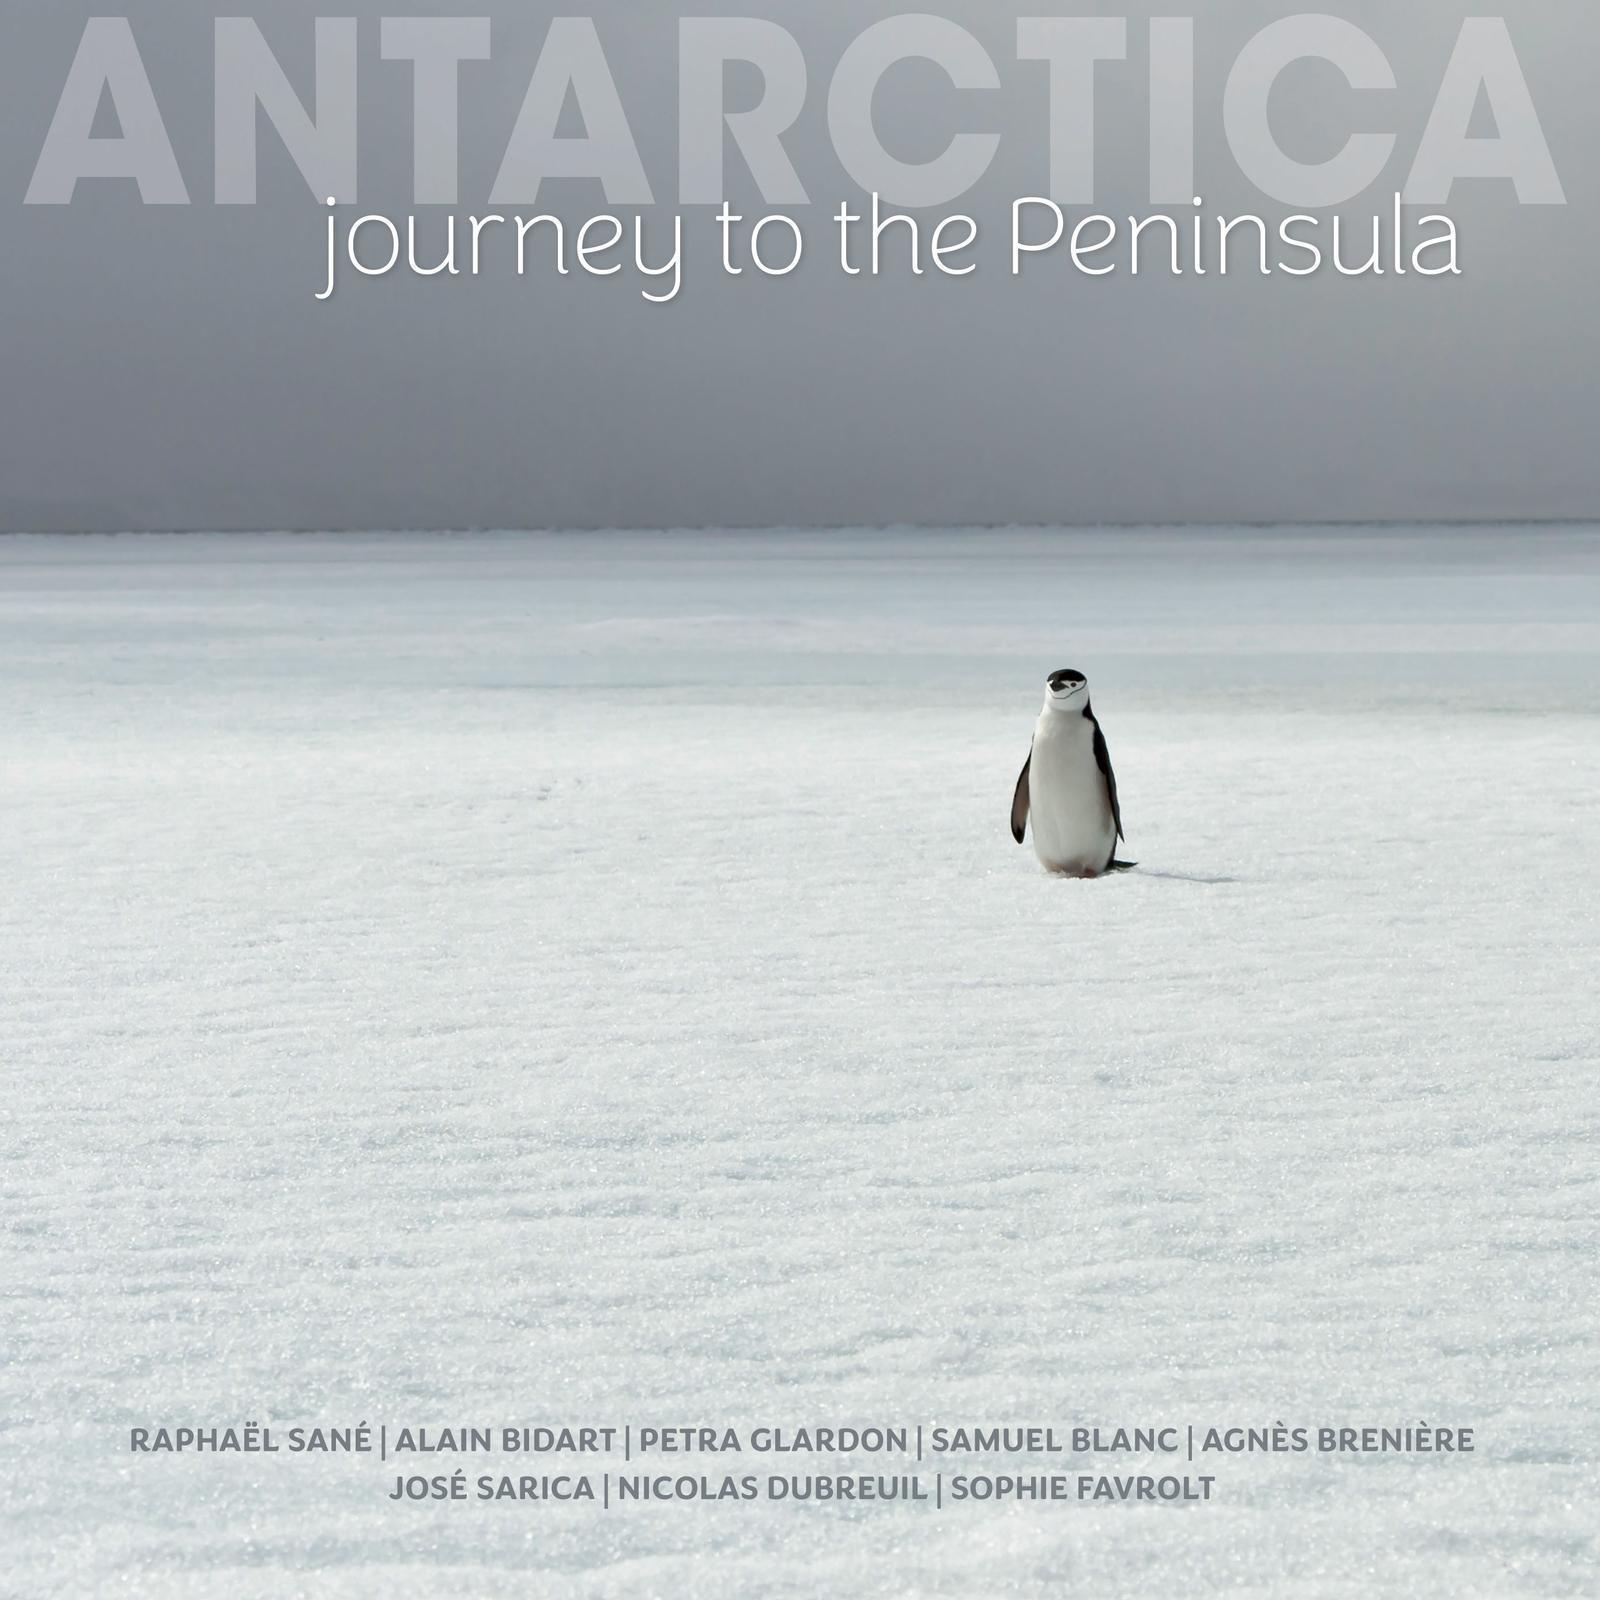 ANTARCTICA - JOURNEY TO THE PENINSULA